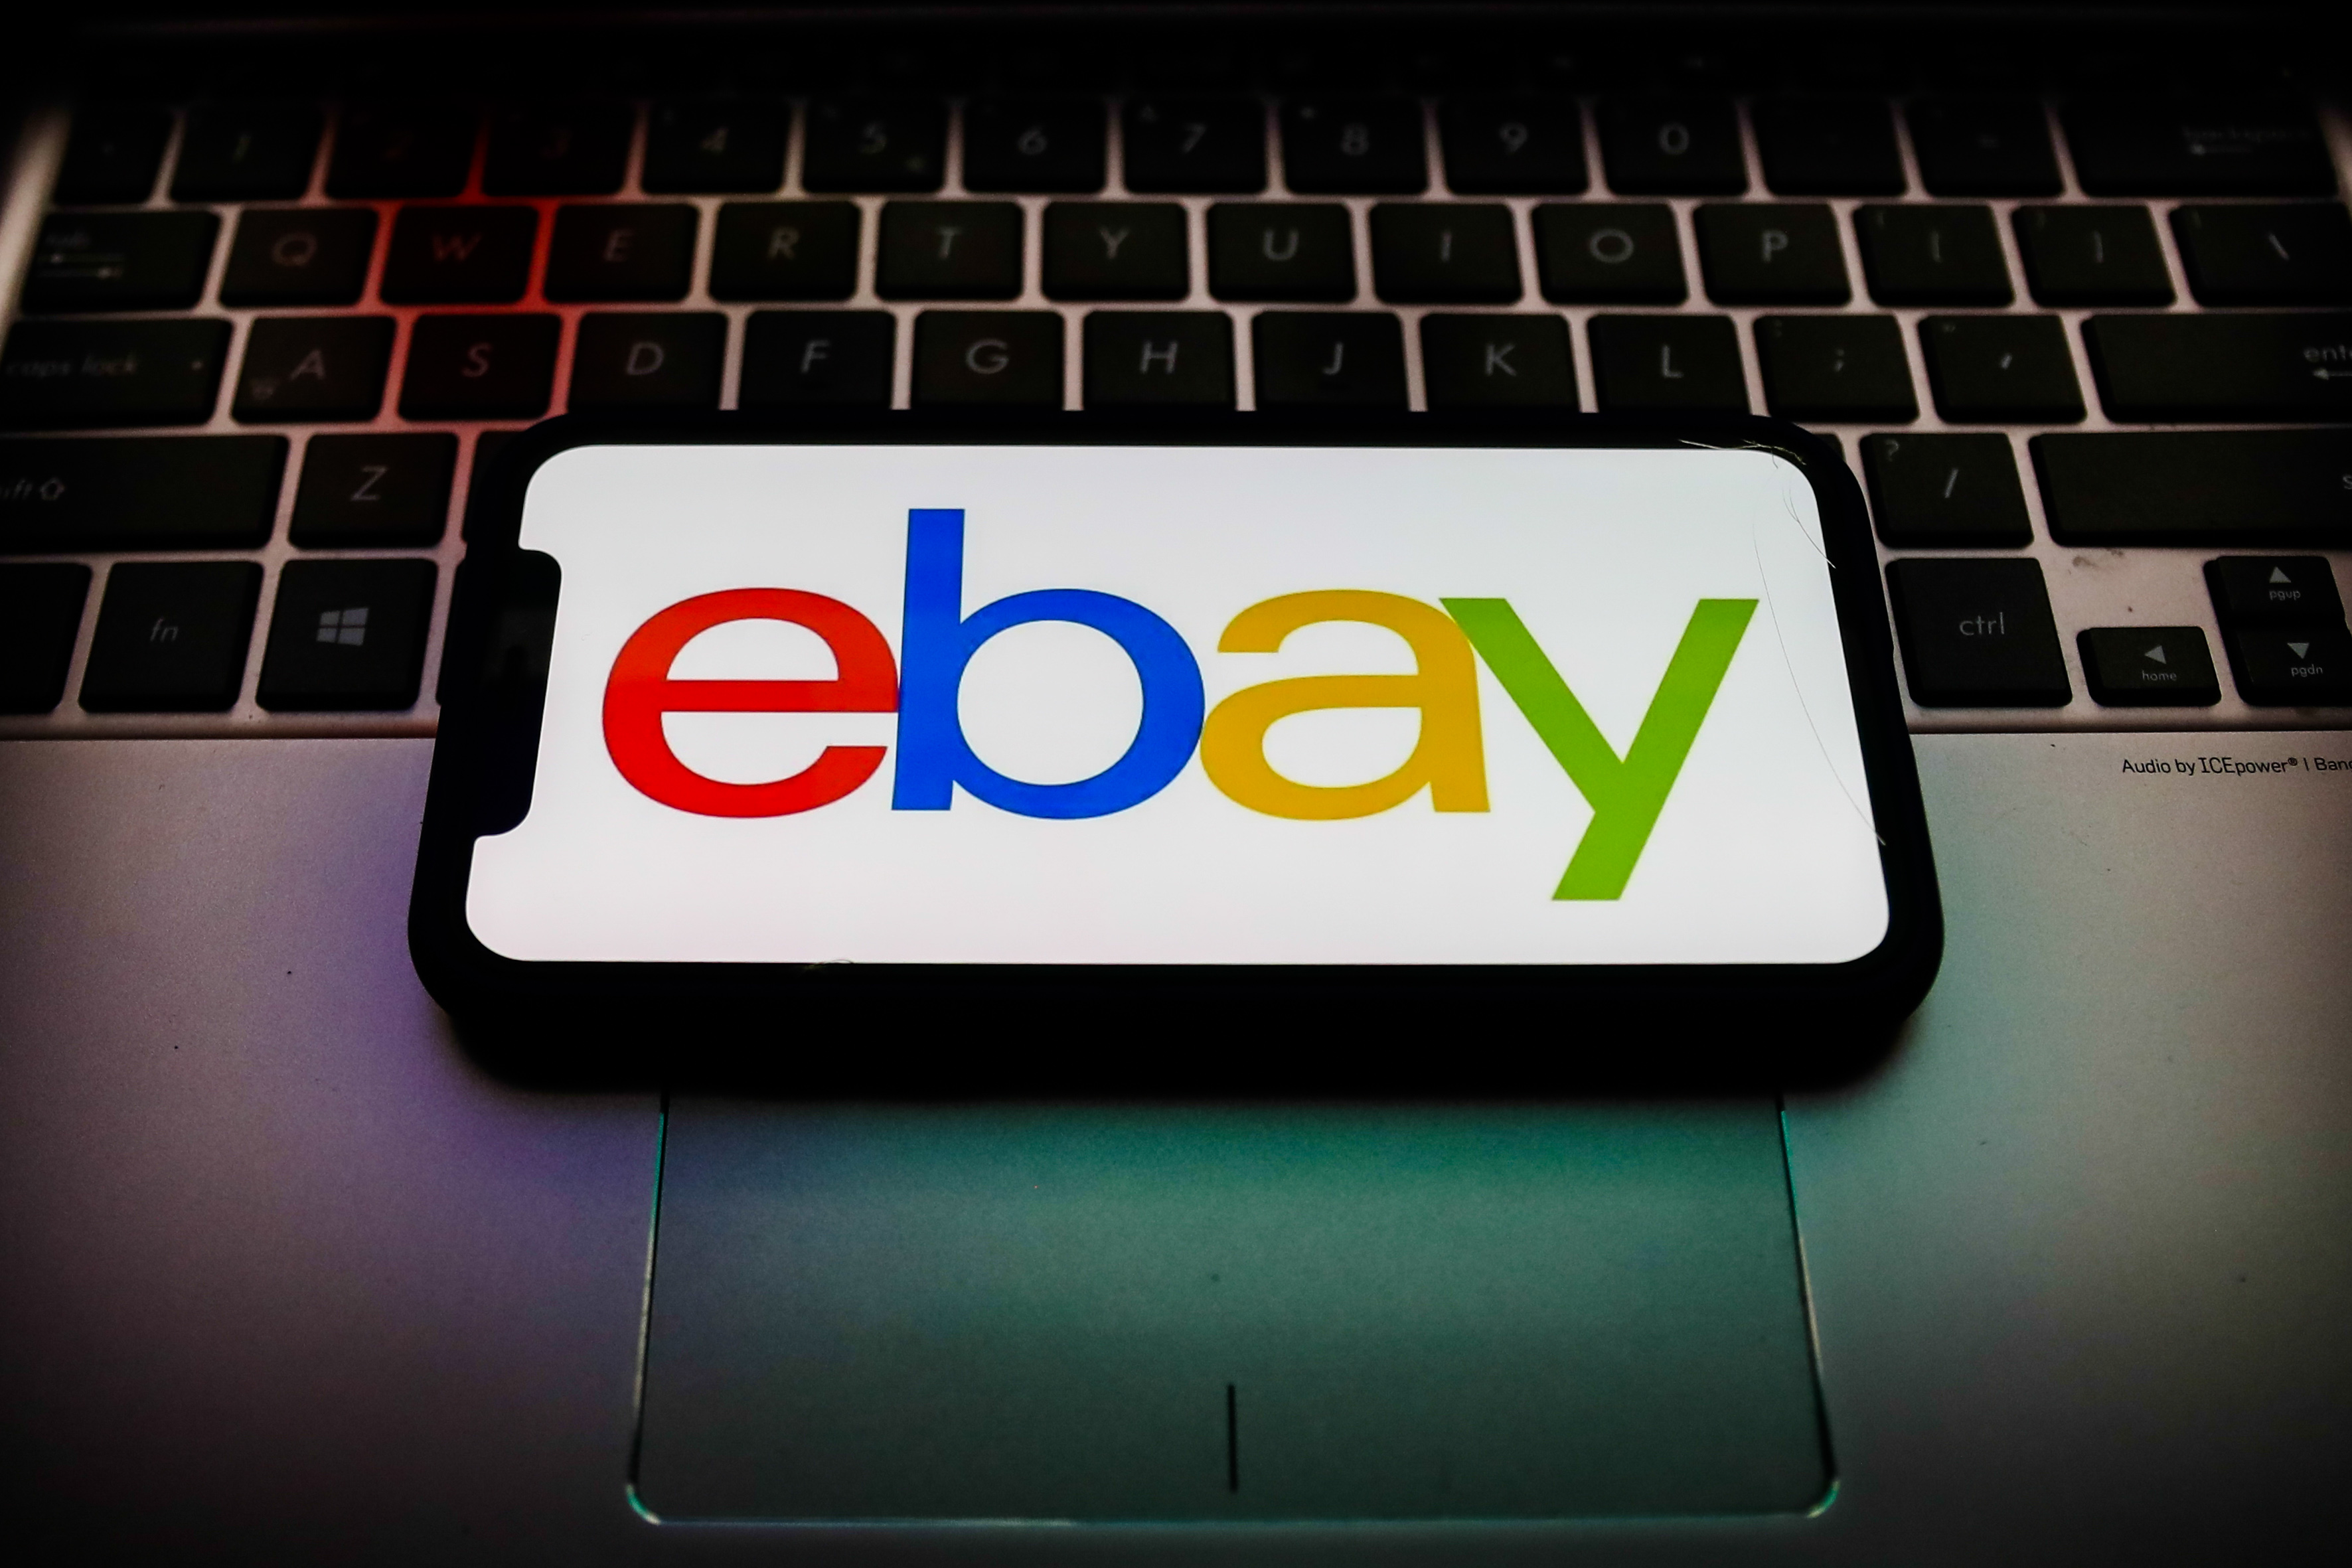 Photo of a phone showing the eBay logo, set on top of a laptop keyboard.